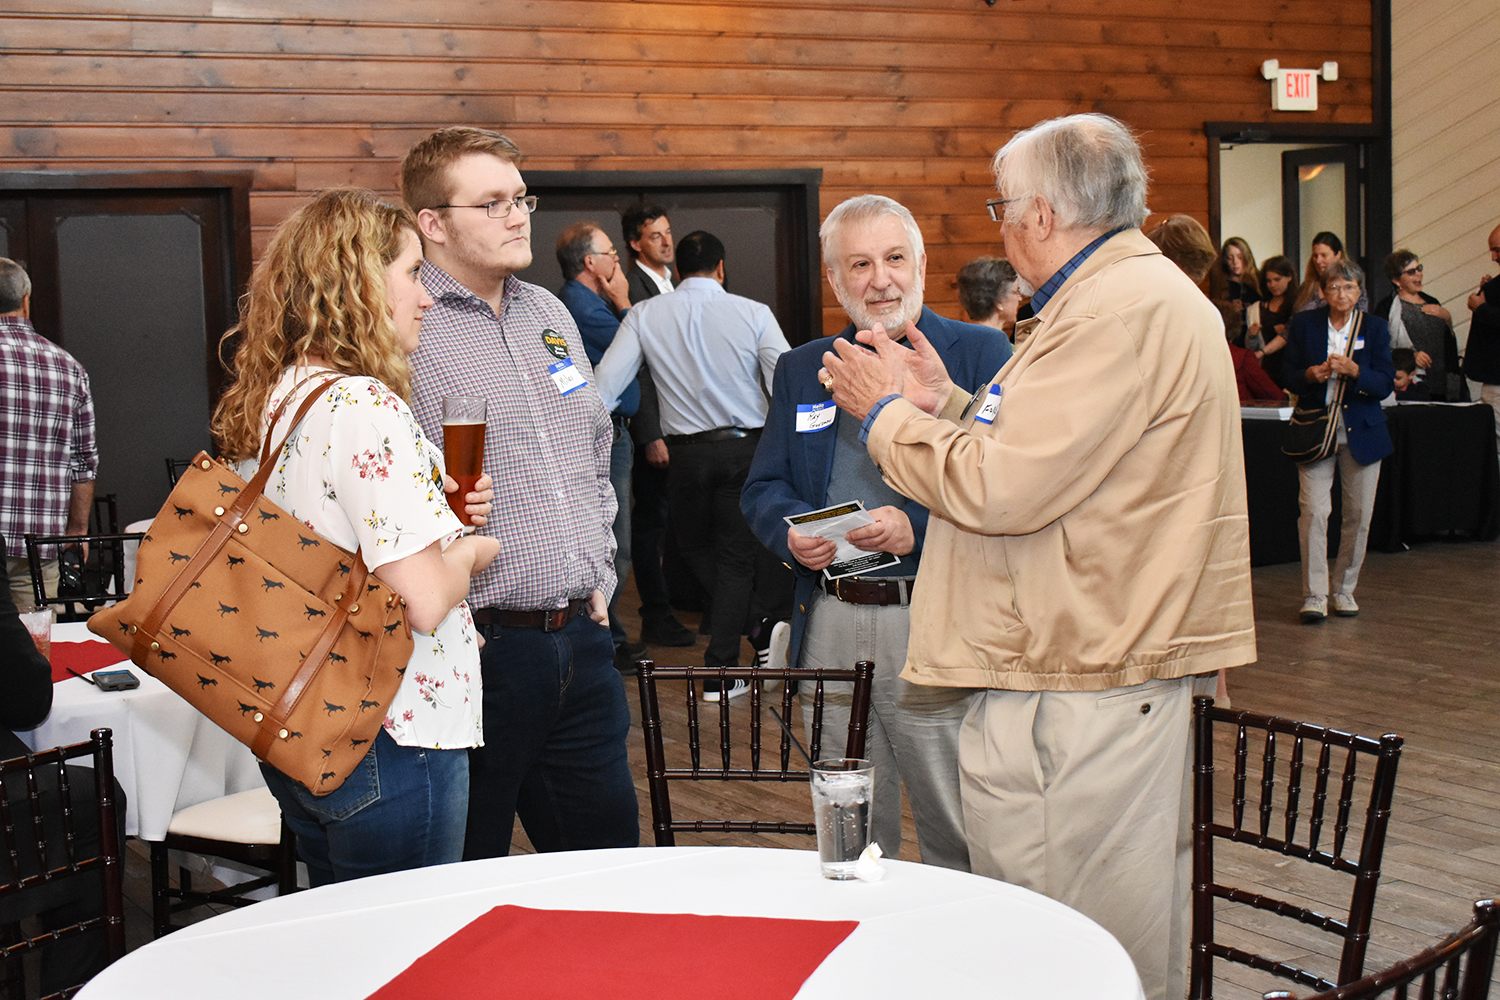 Attendees discussing Kimberly's run for Senate.